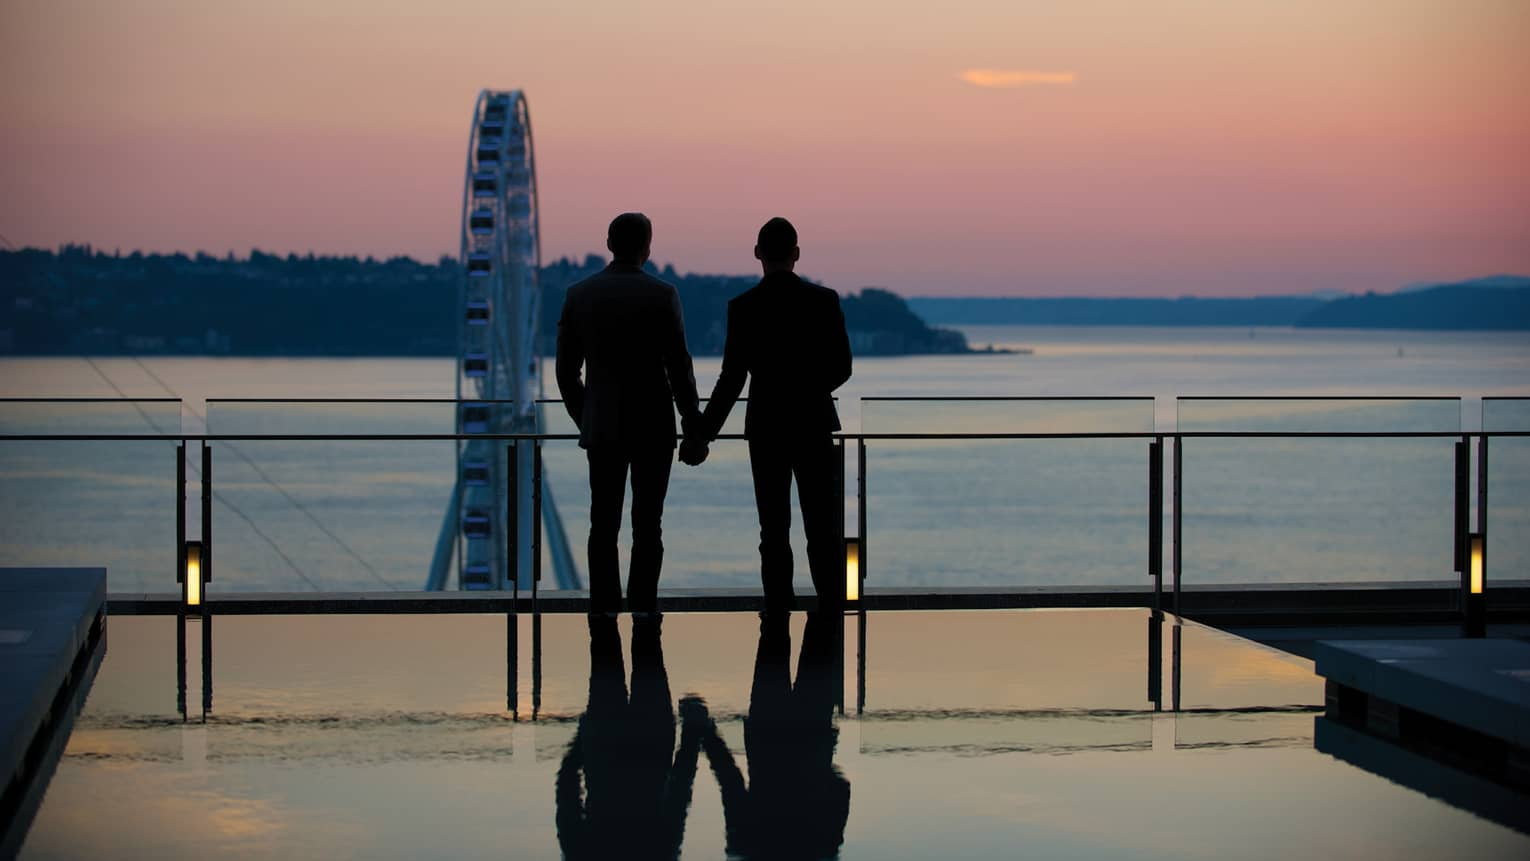 Silhouette of couple wearing suits and holding hands, looking over ocean at sunset